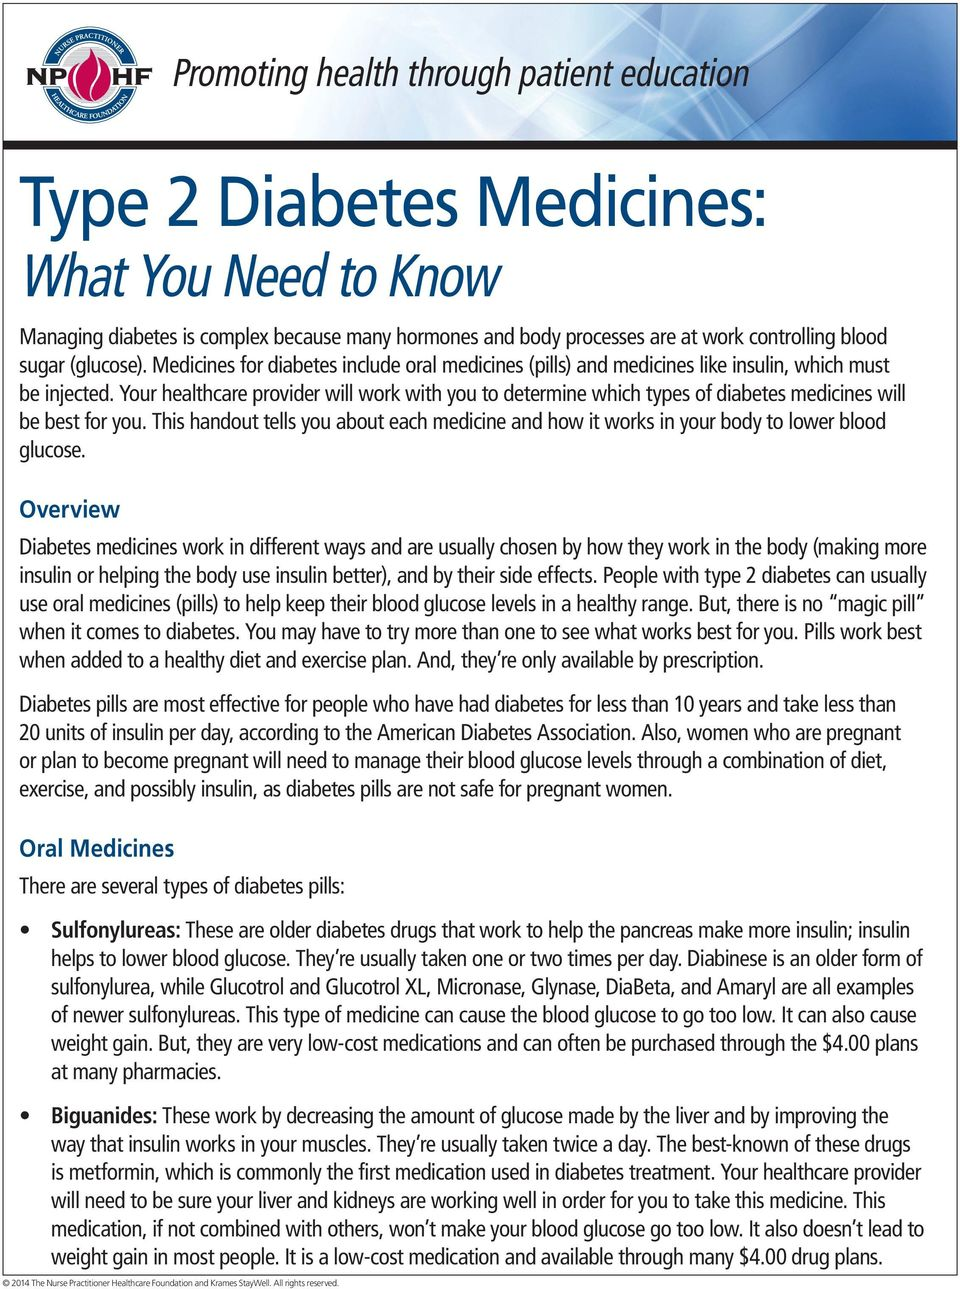 Your healthcare provider will work with you to determine which types of diabetes medicines will be best for you.